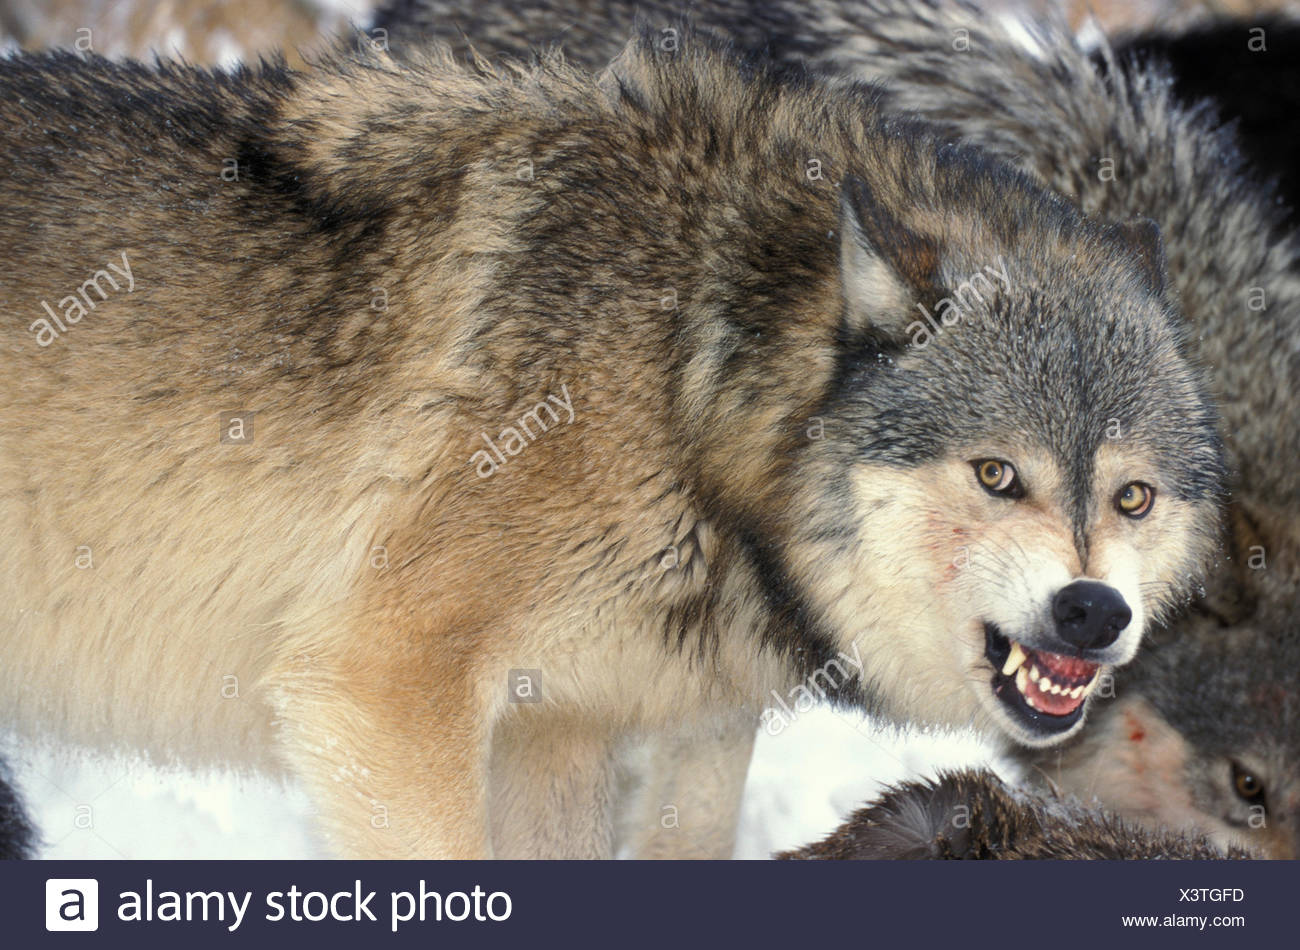 Timber or Grey Wolf, Canis Lupus, Minnesota USA, controlled situation, in snow, winter, wolf pack on deer kill, snarling - Stock Image